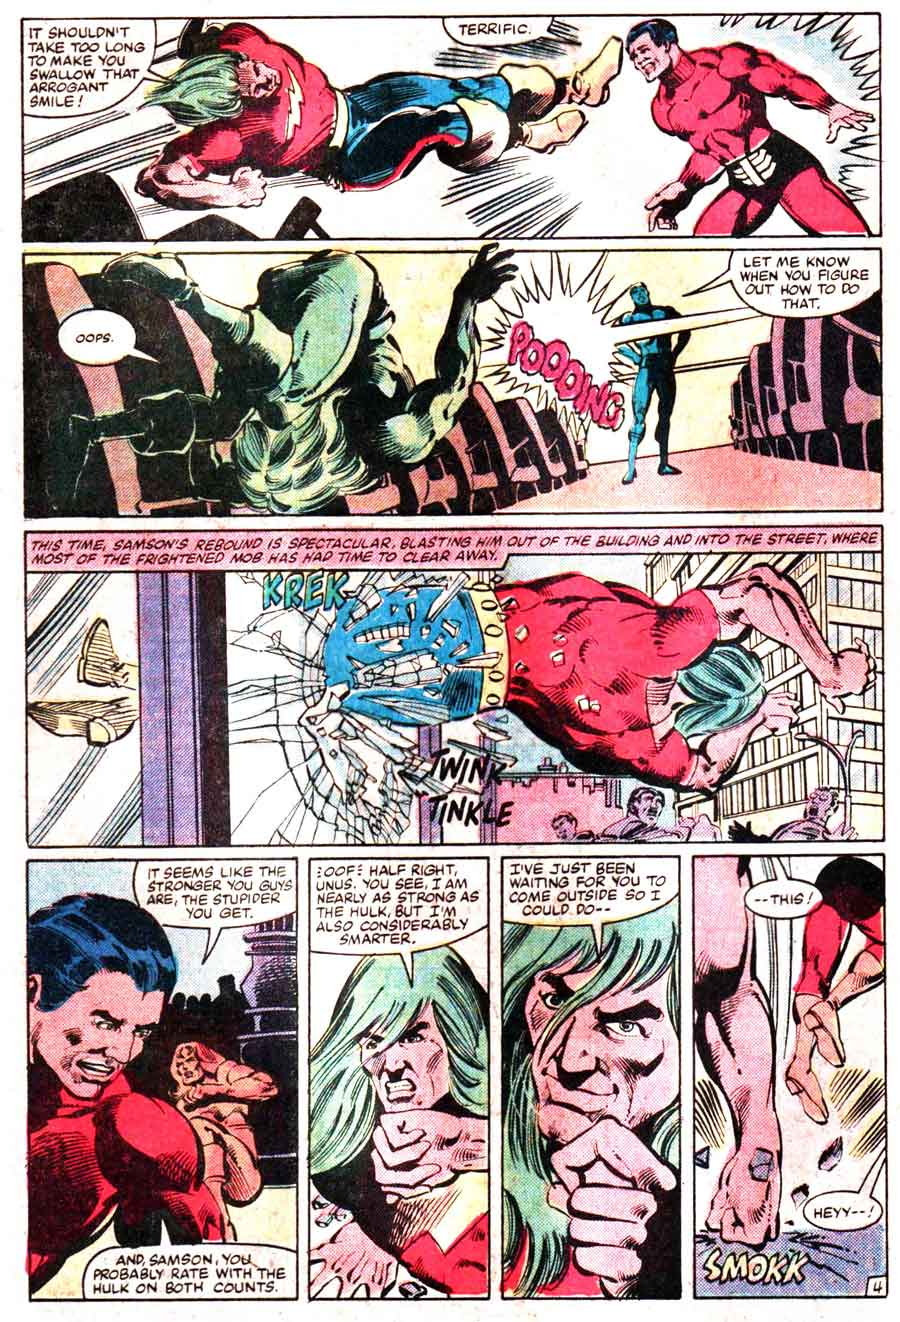 Incredible Hulk v2 annual #11 marvel comic book page art by Frank Miller